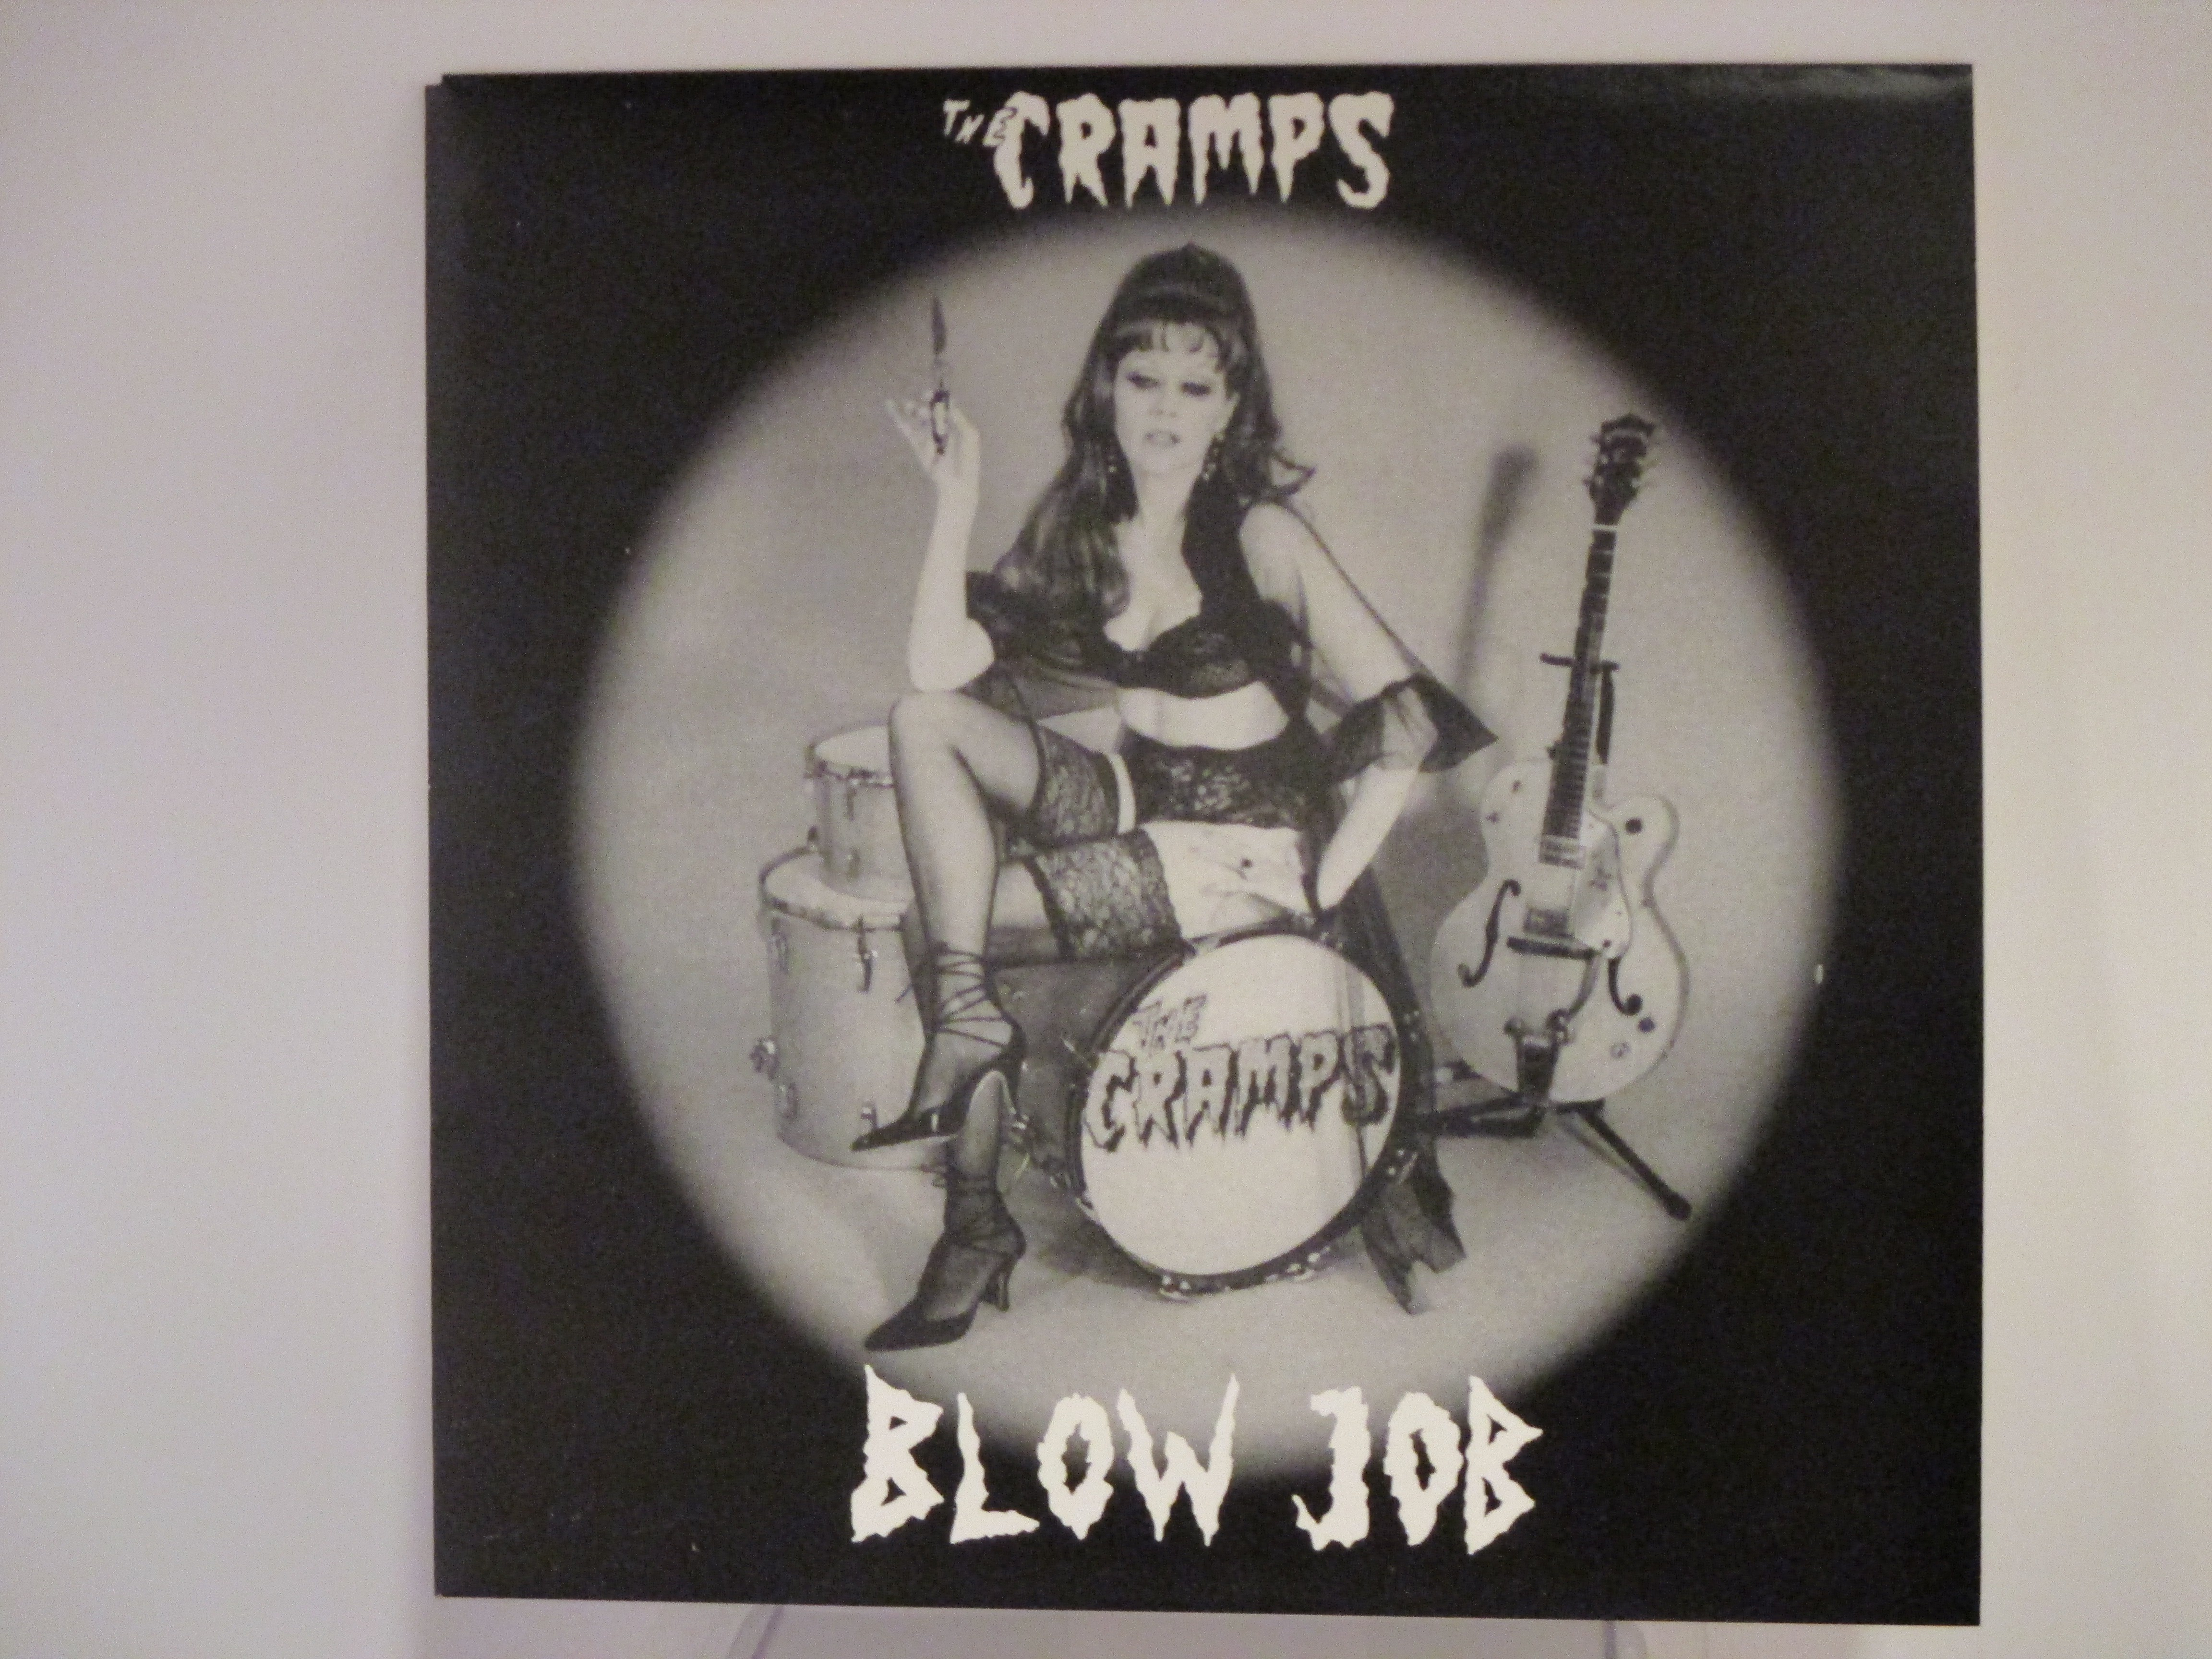 """CRAMPS : (EP)  """"Blowjob"""" : Do the clam / Love me / Blue moon baby / Cornfed dames"""